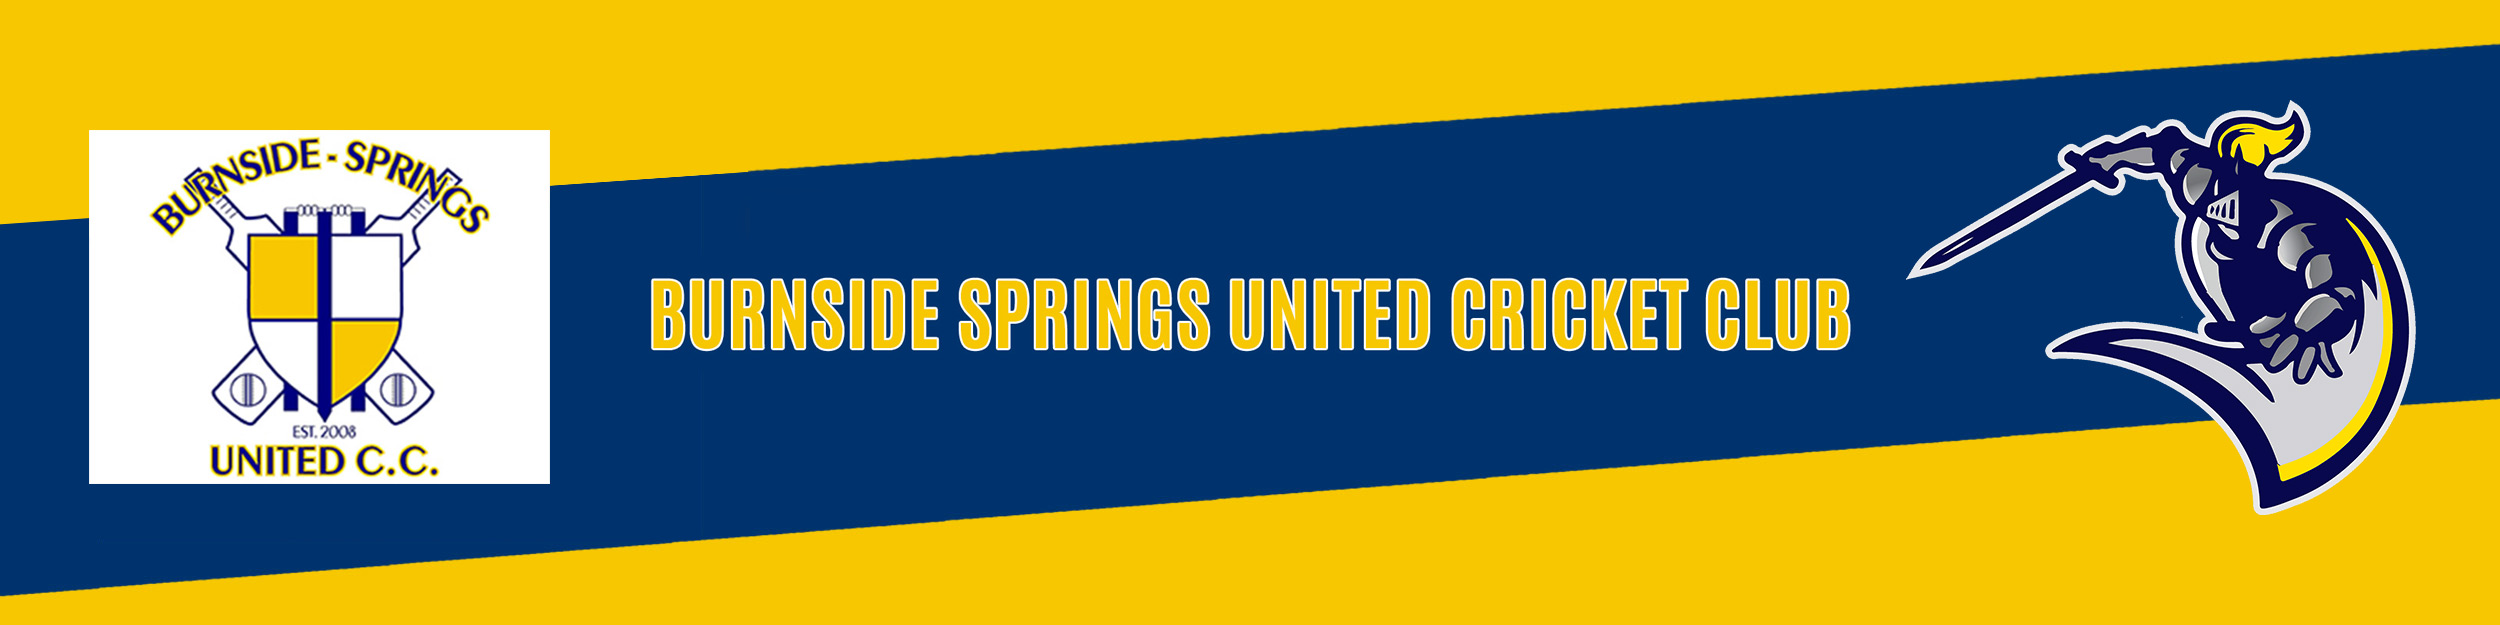 Burnside Springs United Cricket Club